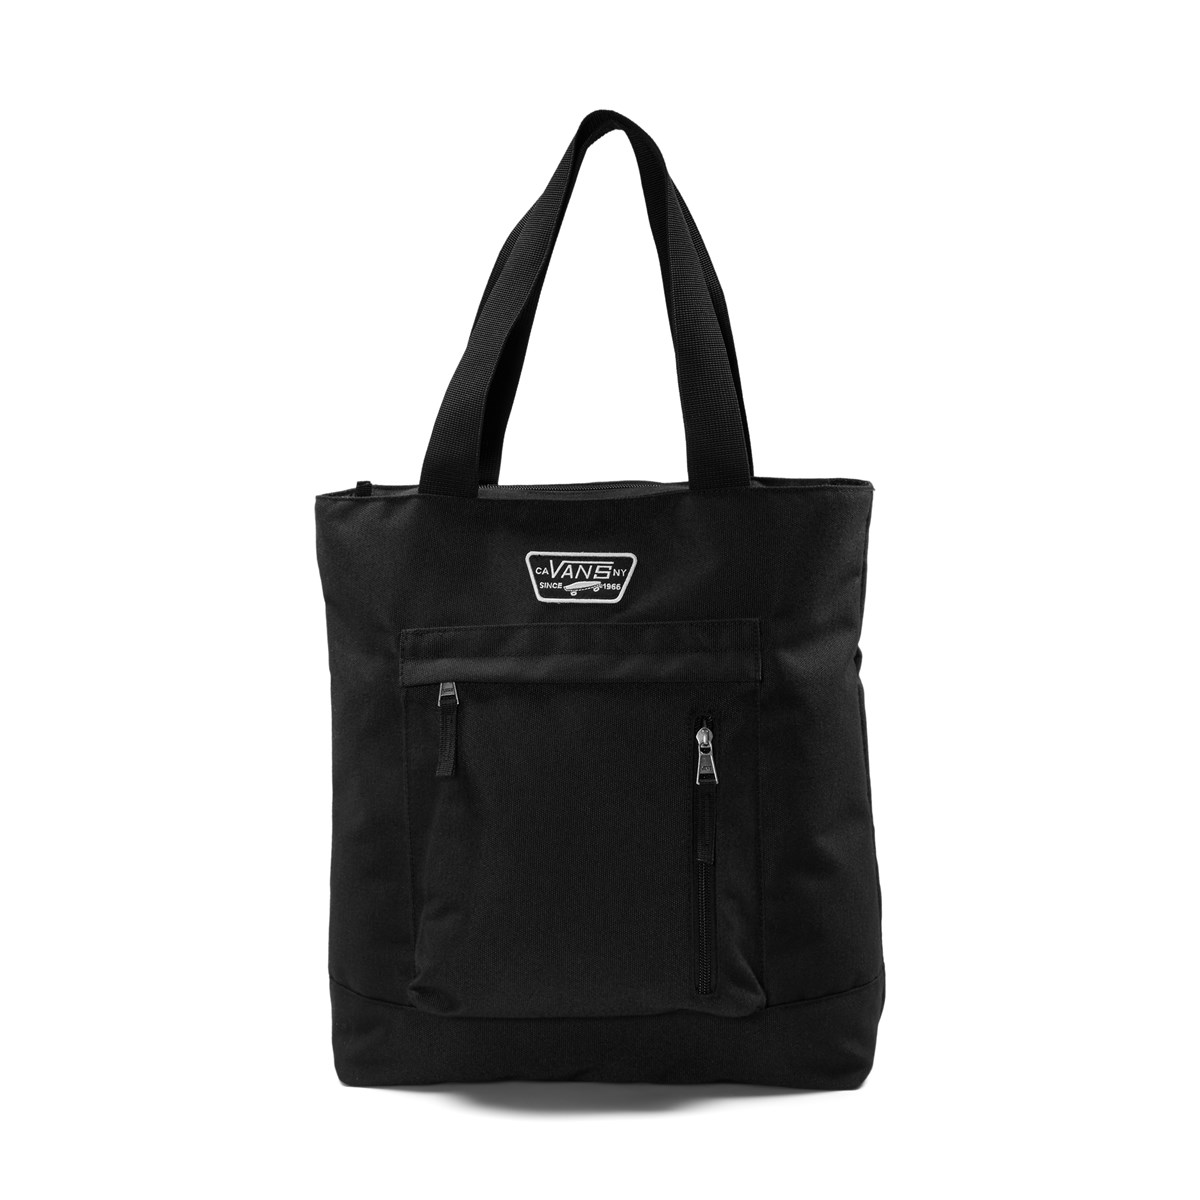 In The Know Tote Bag in Black